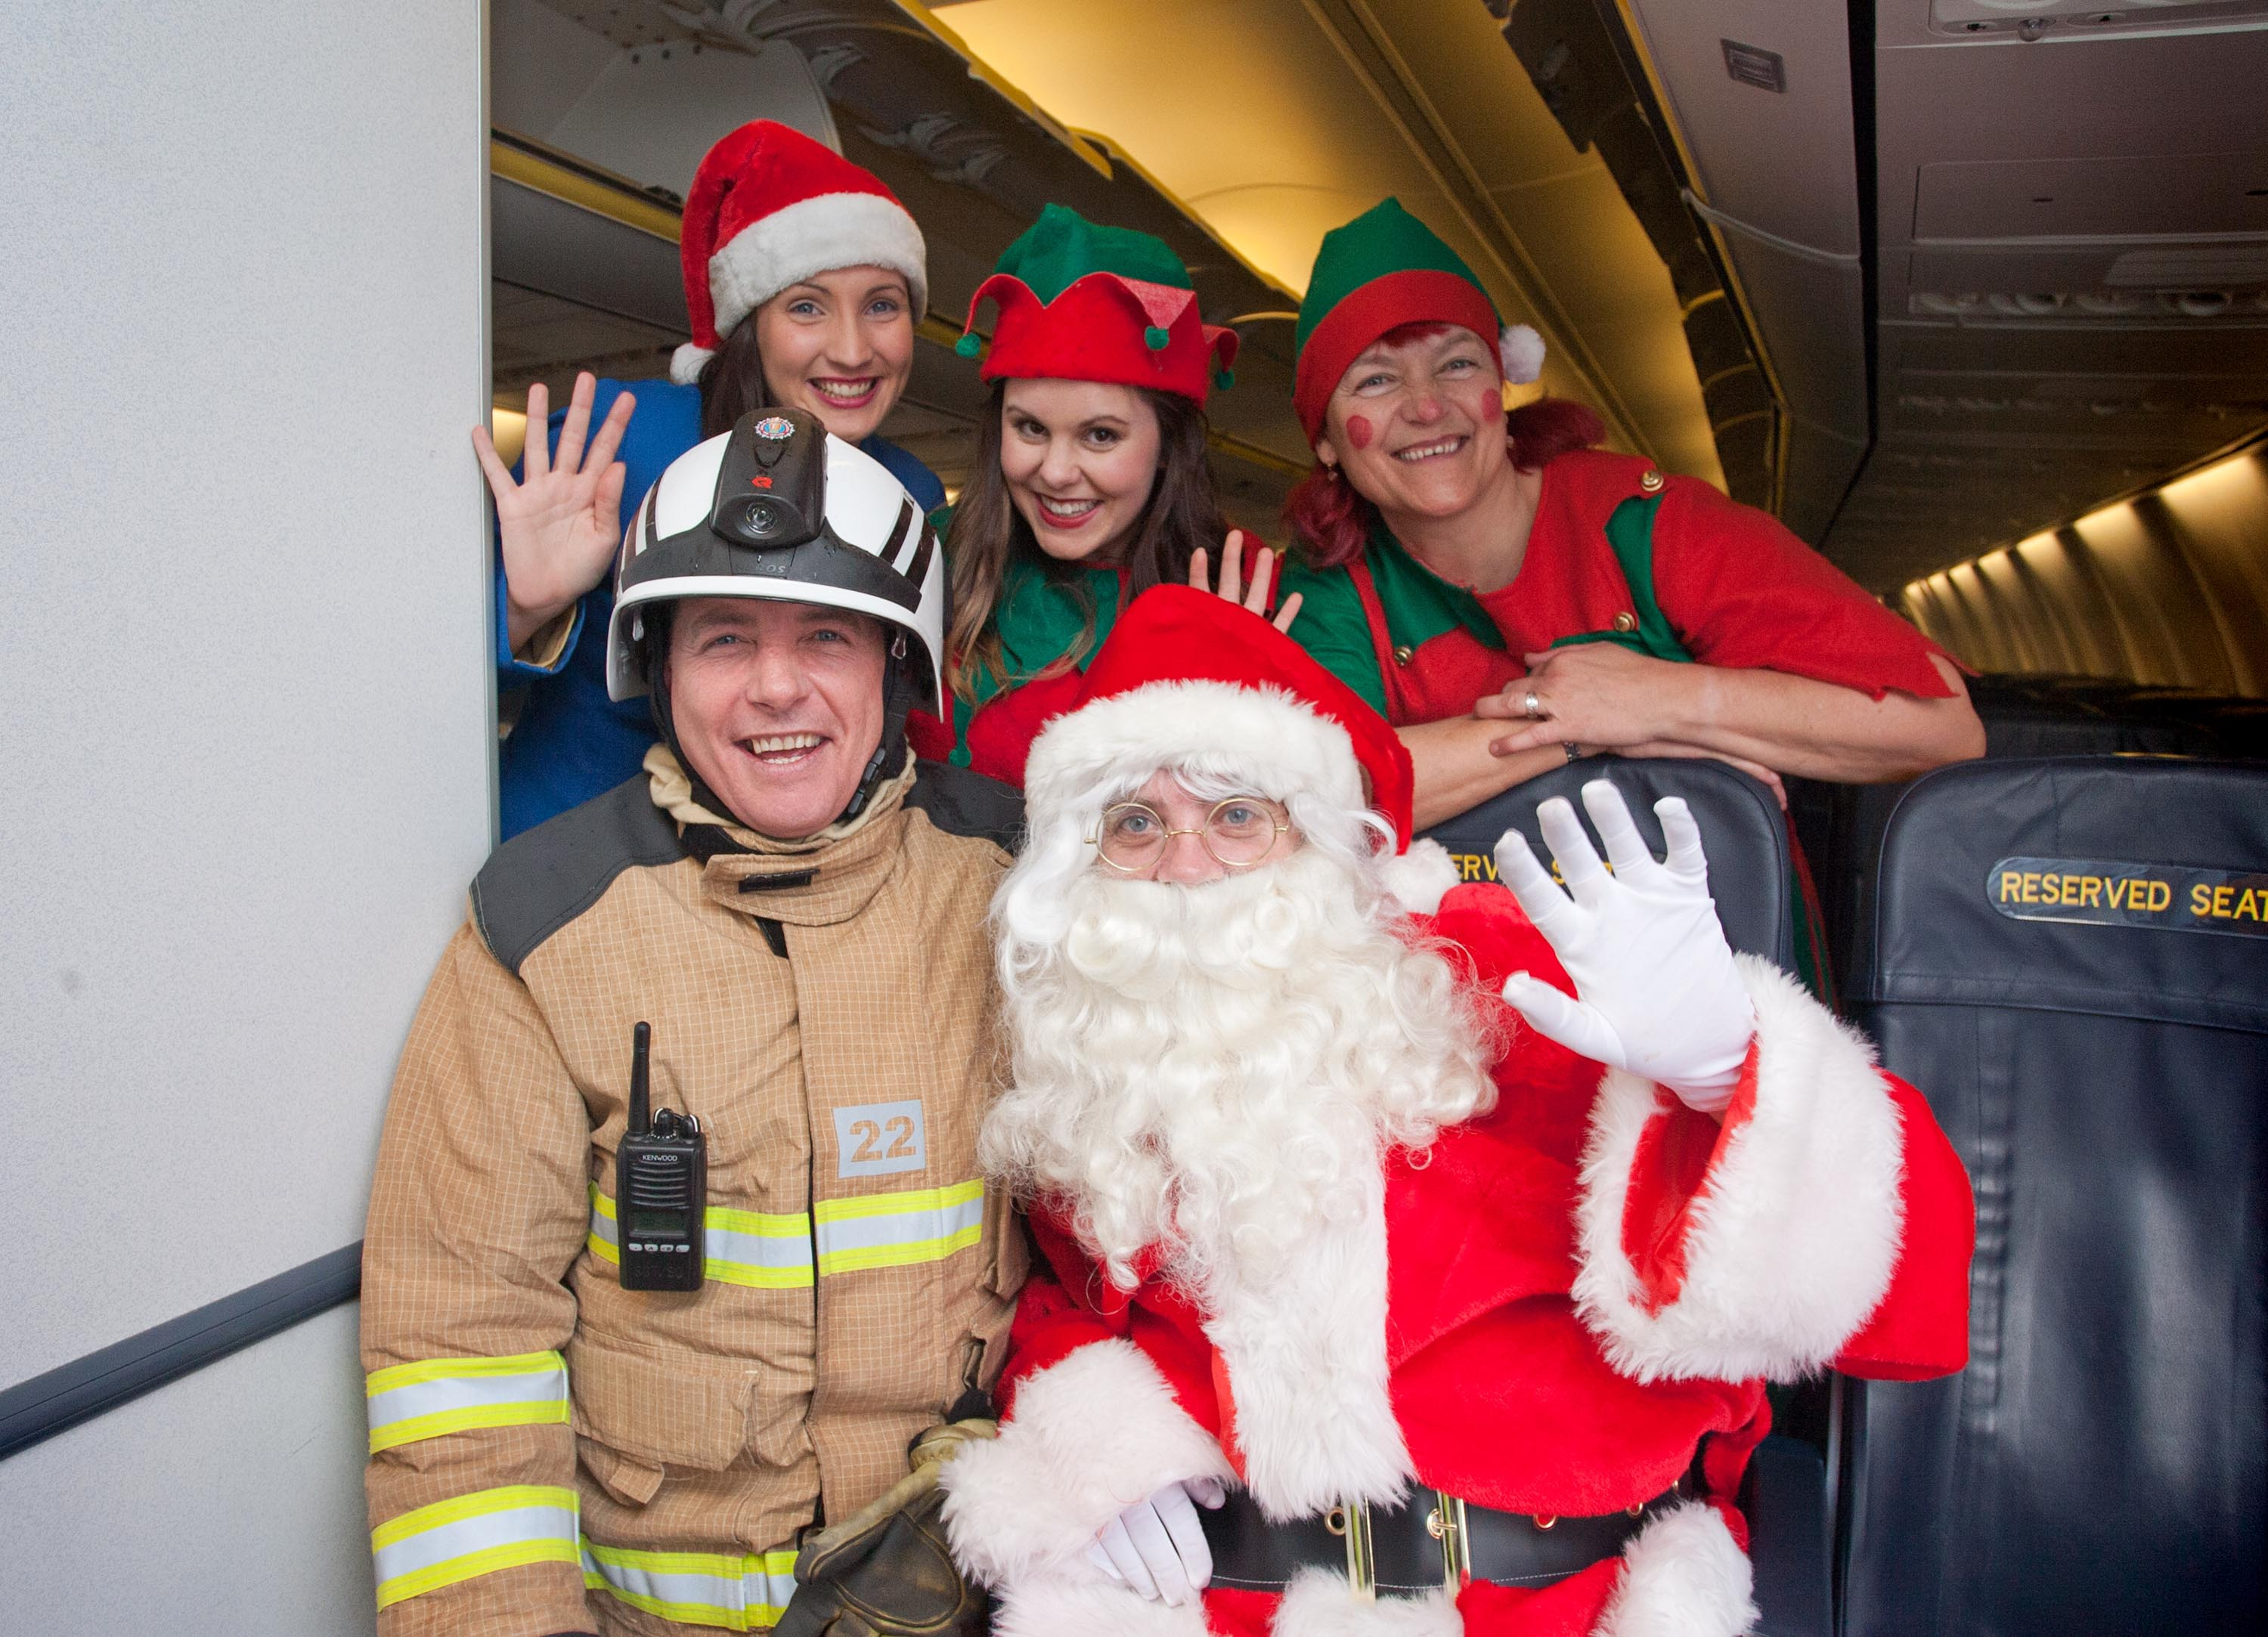 Pictured onboard at Shannon Airport with Santa Claus are Airport Fire Officer Pat O'Neill, Ryanair Cabin Crew , Catherine Browne and Elves Jeanette McKee and Fran Minter.Pic Arthur Ellis - http://www.arthurellisphotography.ie/